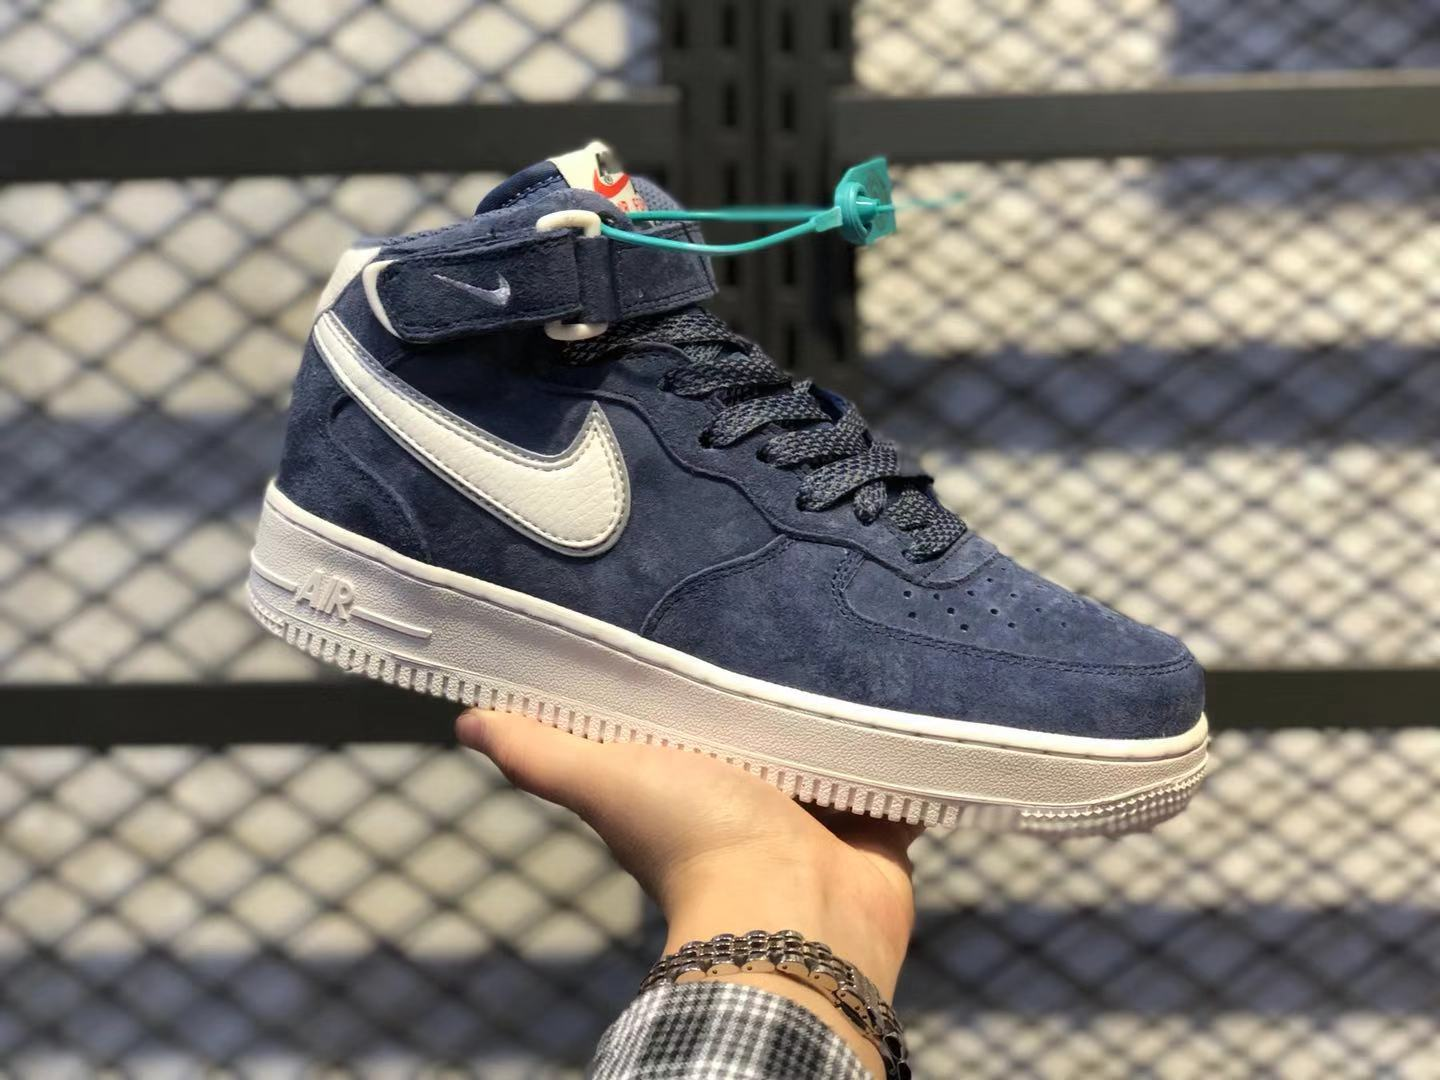 2020 New Nike Air Force 1 Mid AA1118-007 Navy Blue/White For Online Sale